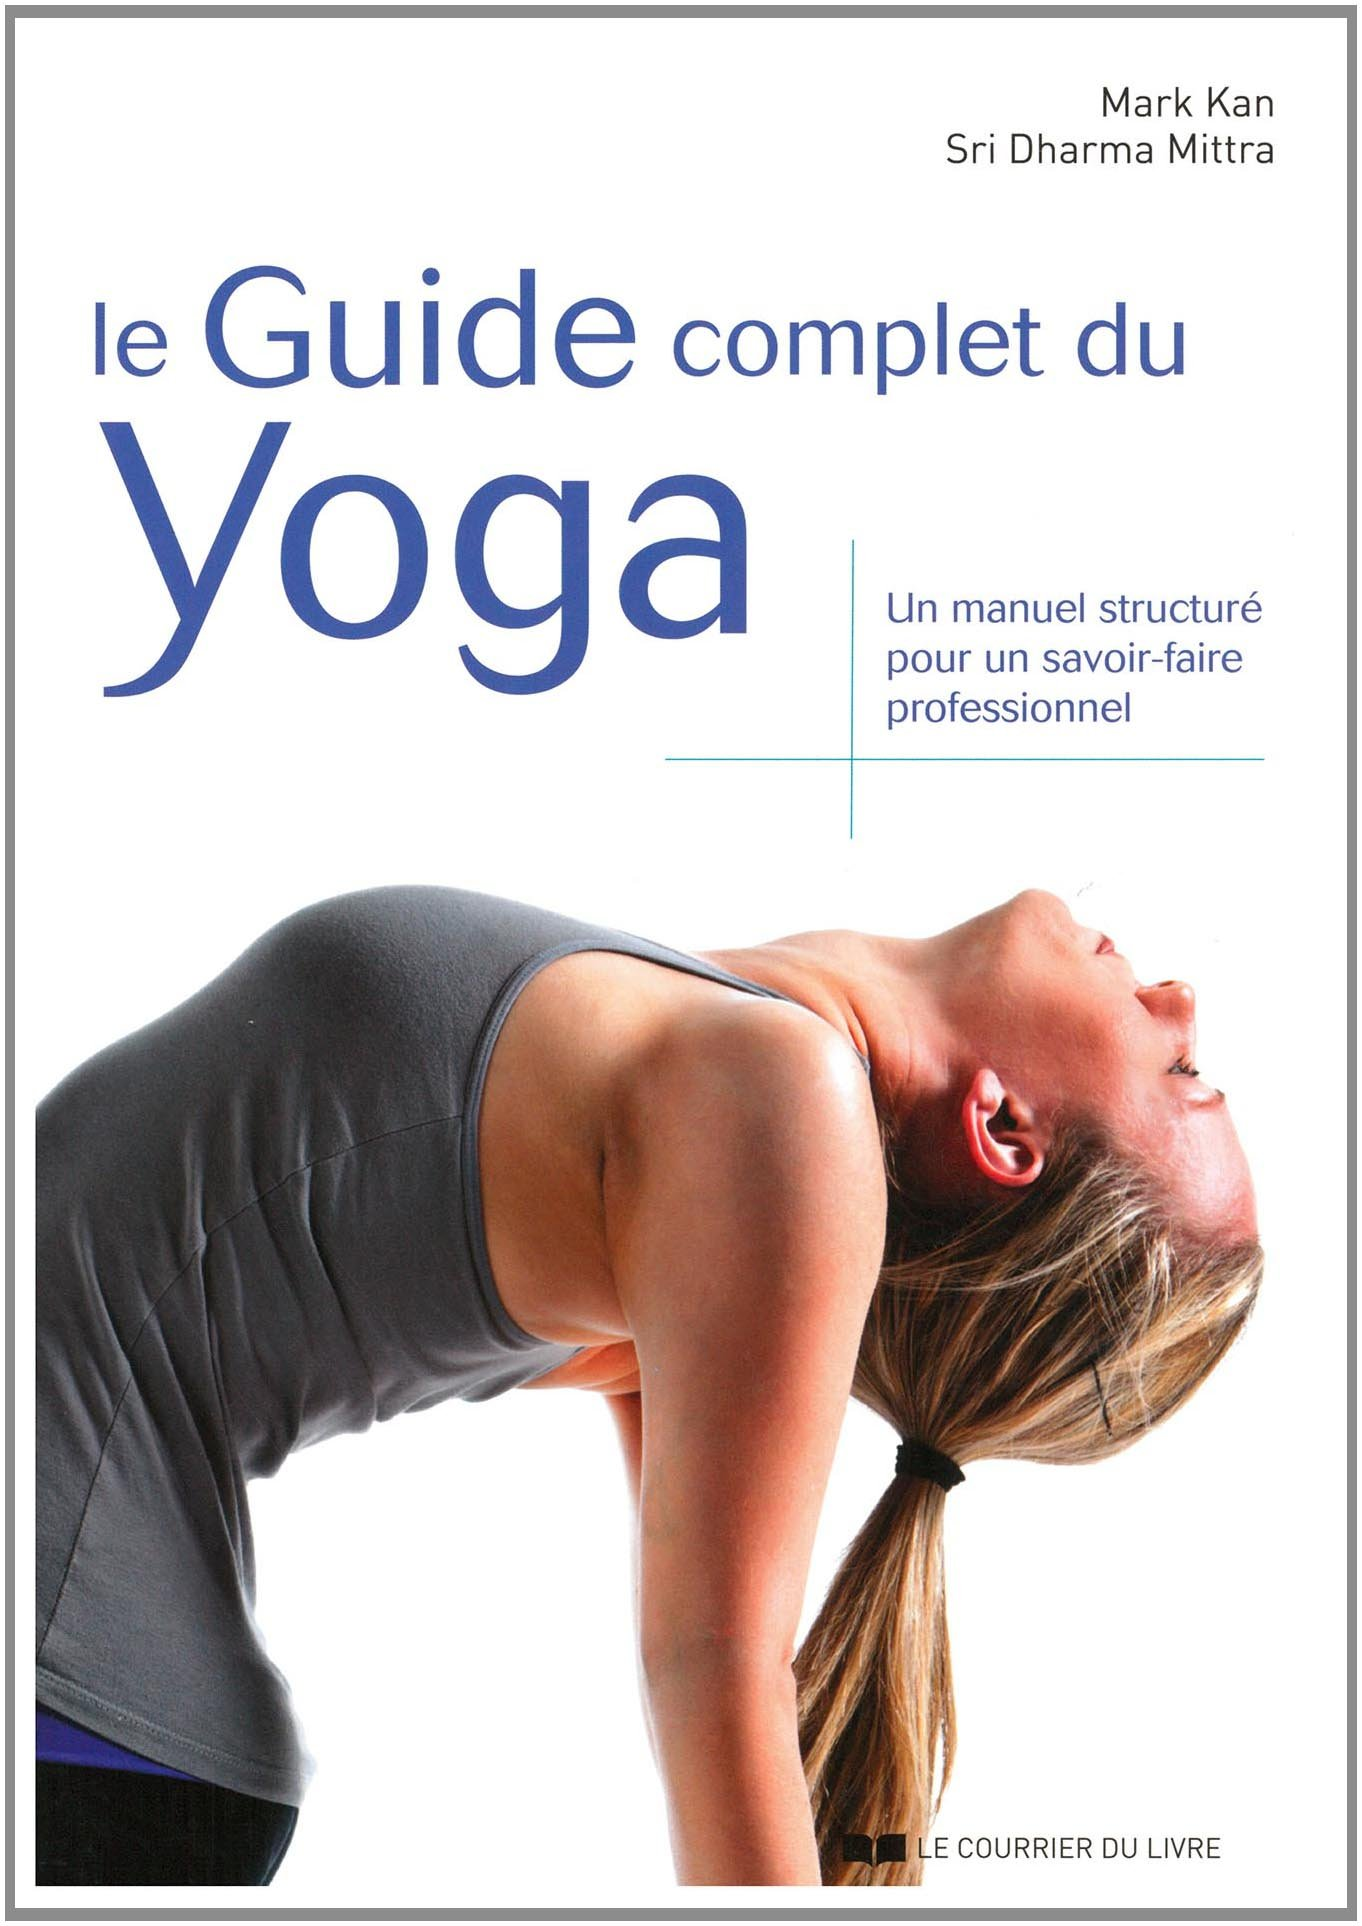 Le guide complet dy yoga: Amazon.es: Mark Kan, Sri Dharma ...